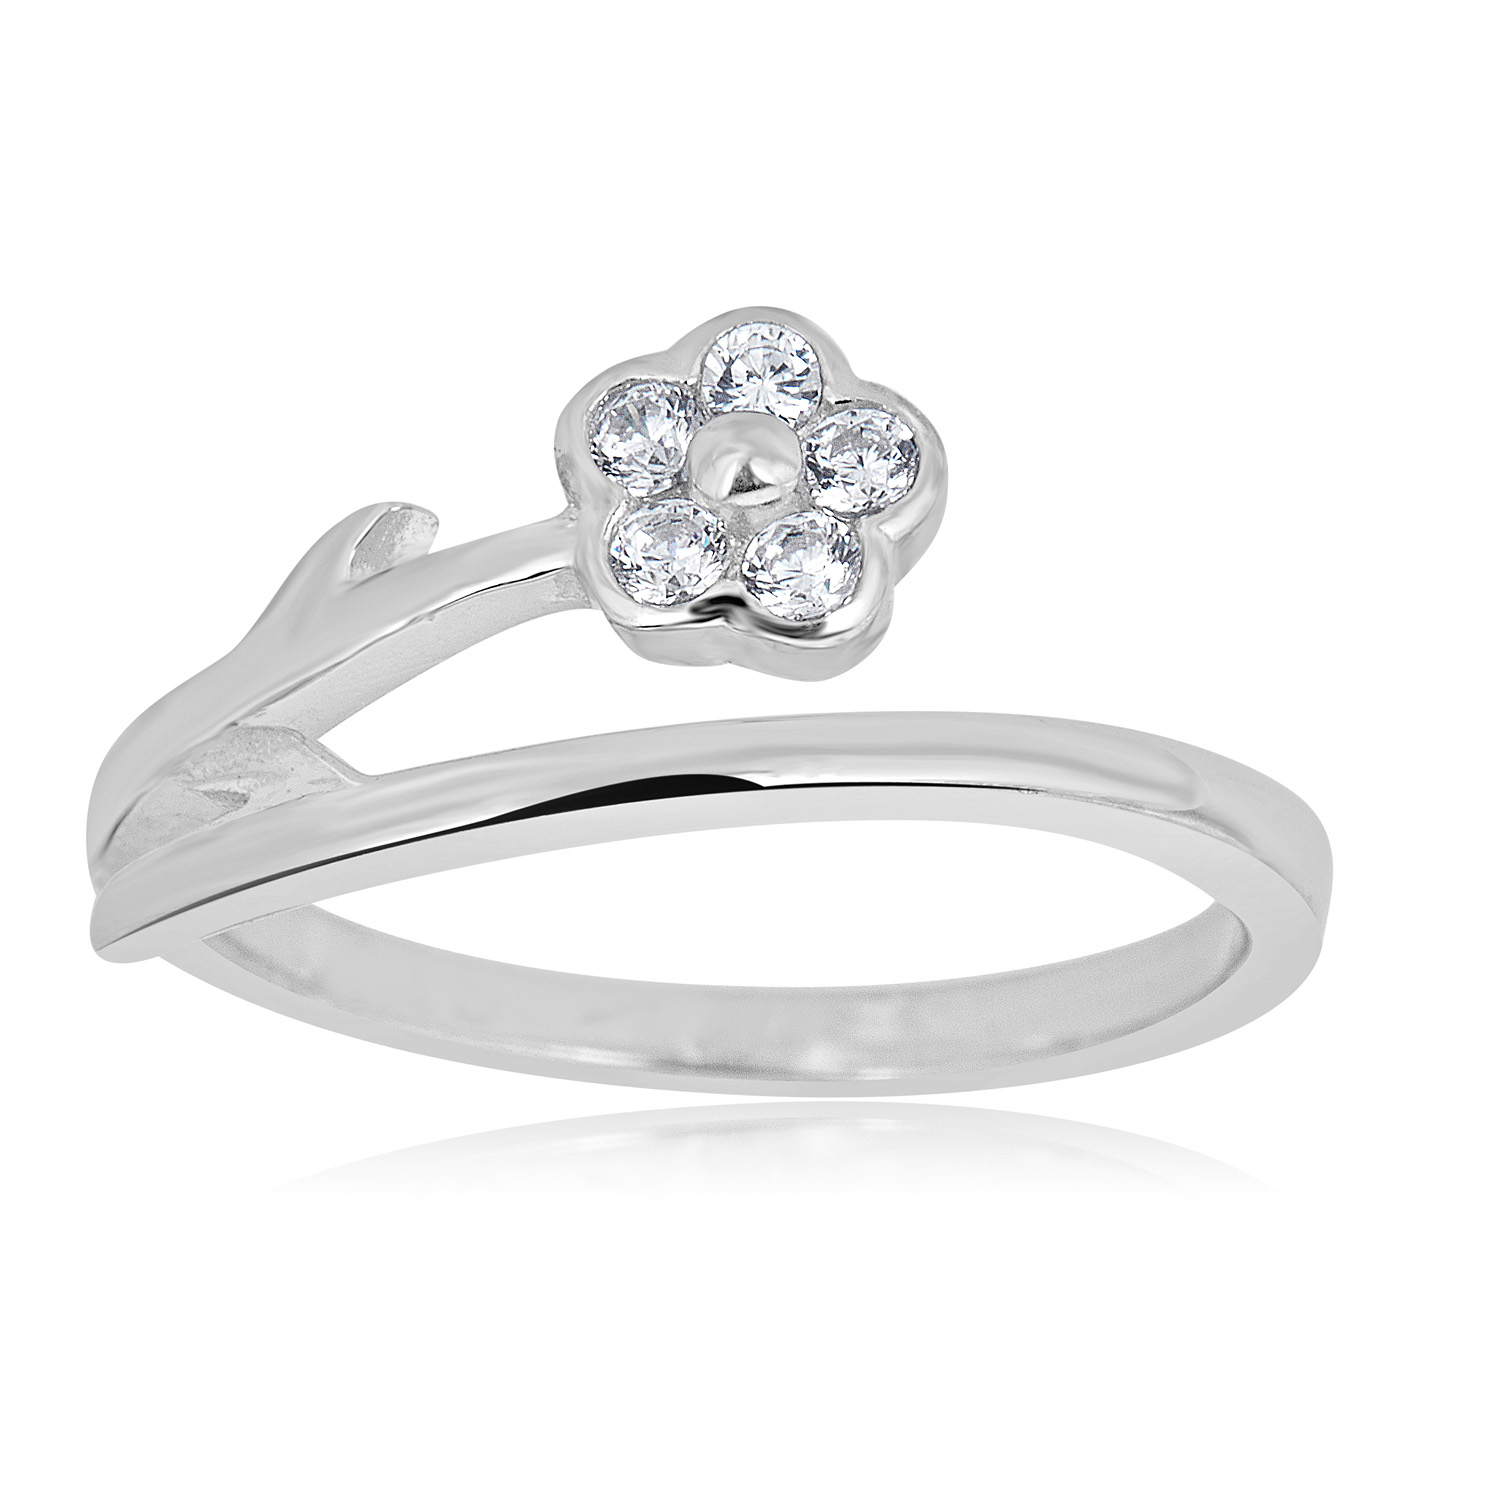 Cubic Zicronia Toe Ring Adjustable Silver 925